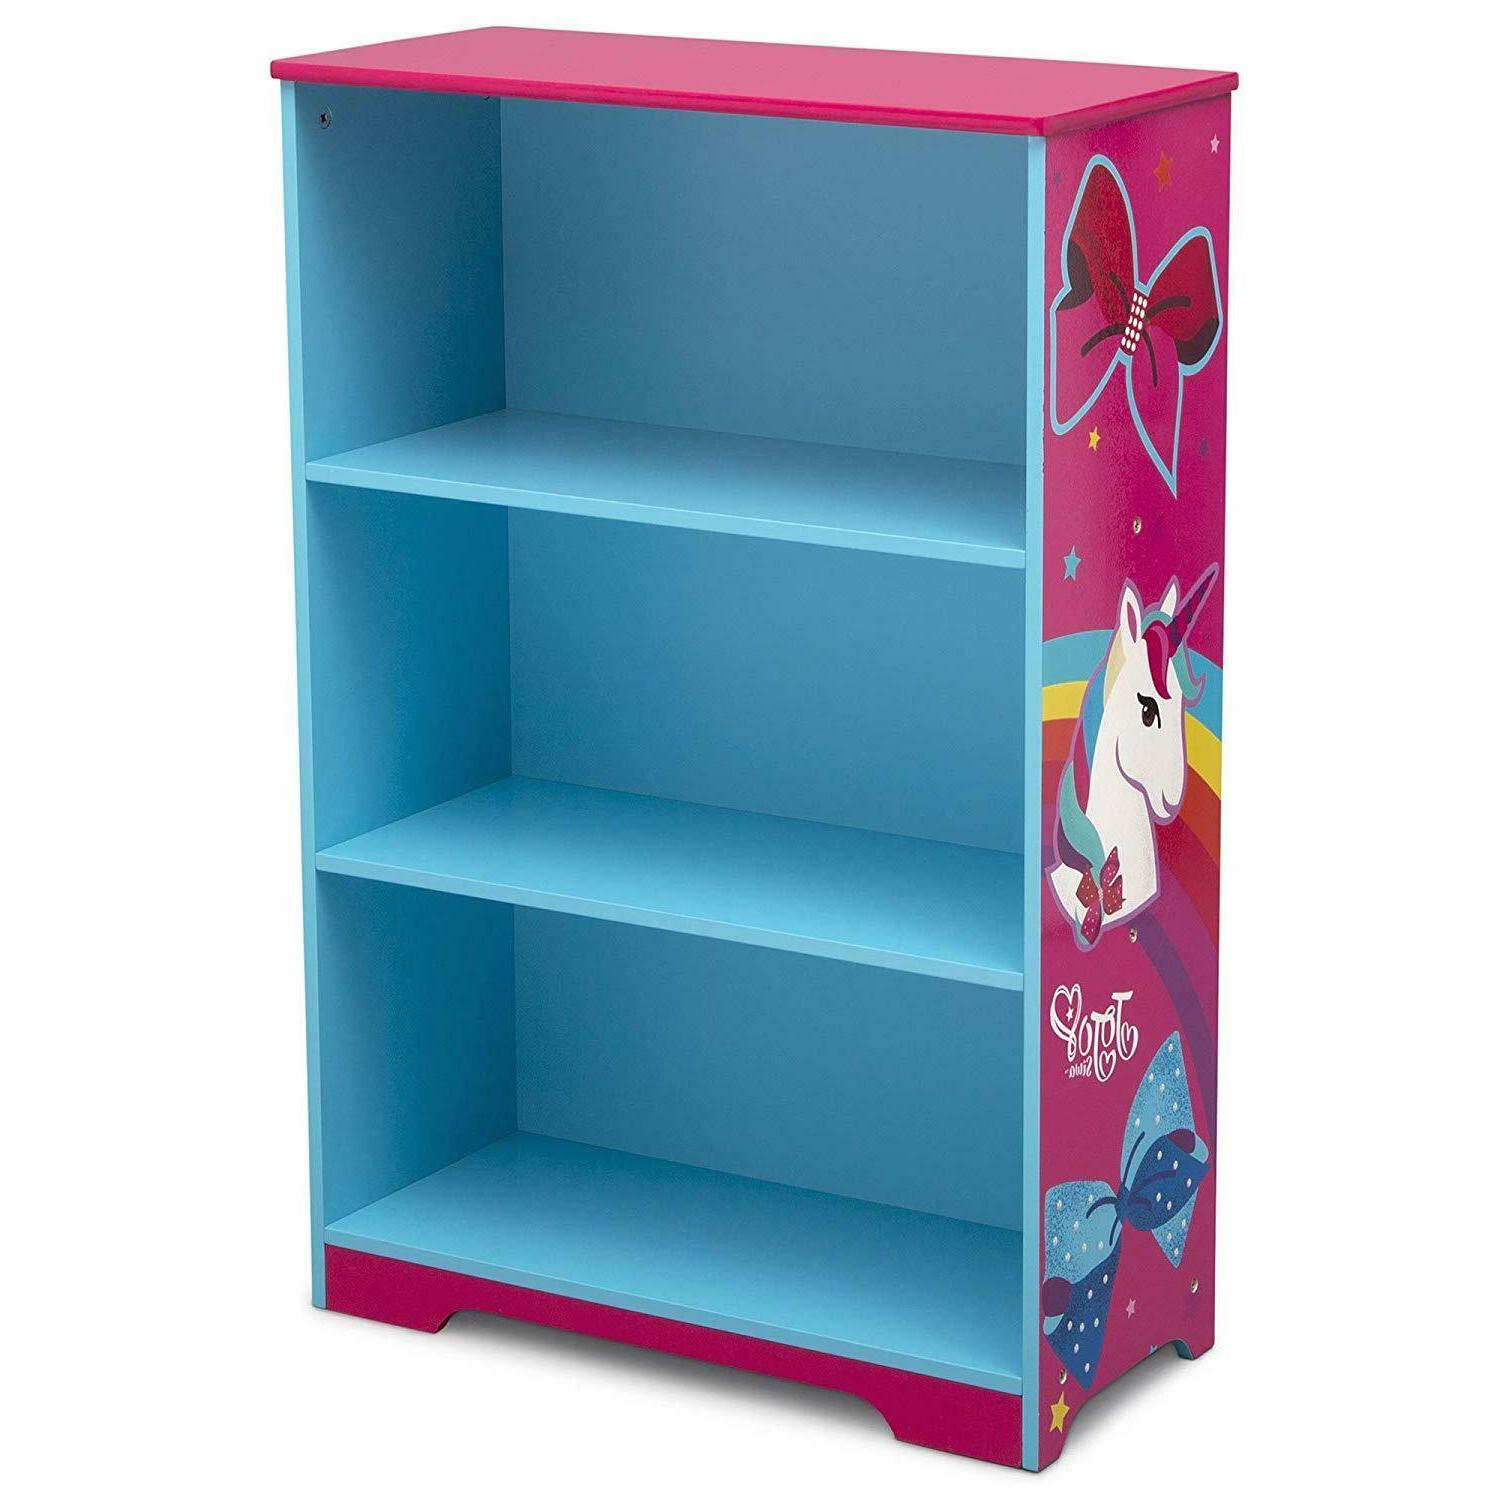 Delta Shelf Bookcase, JoJo Siwa Recommended For 3+ And Up